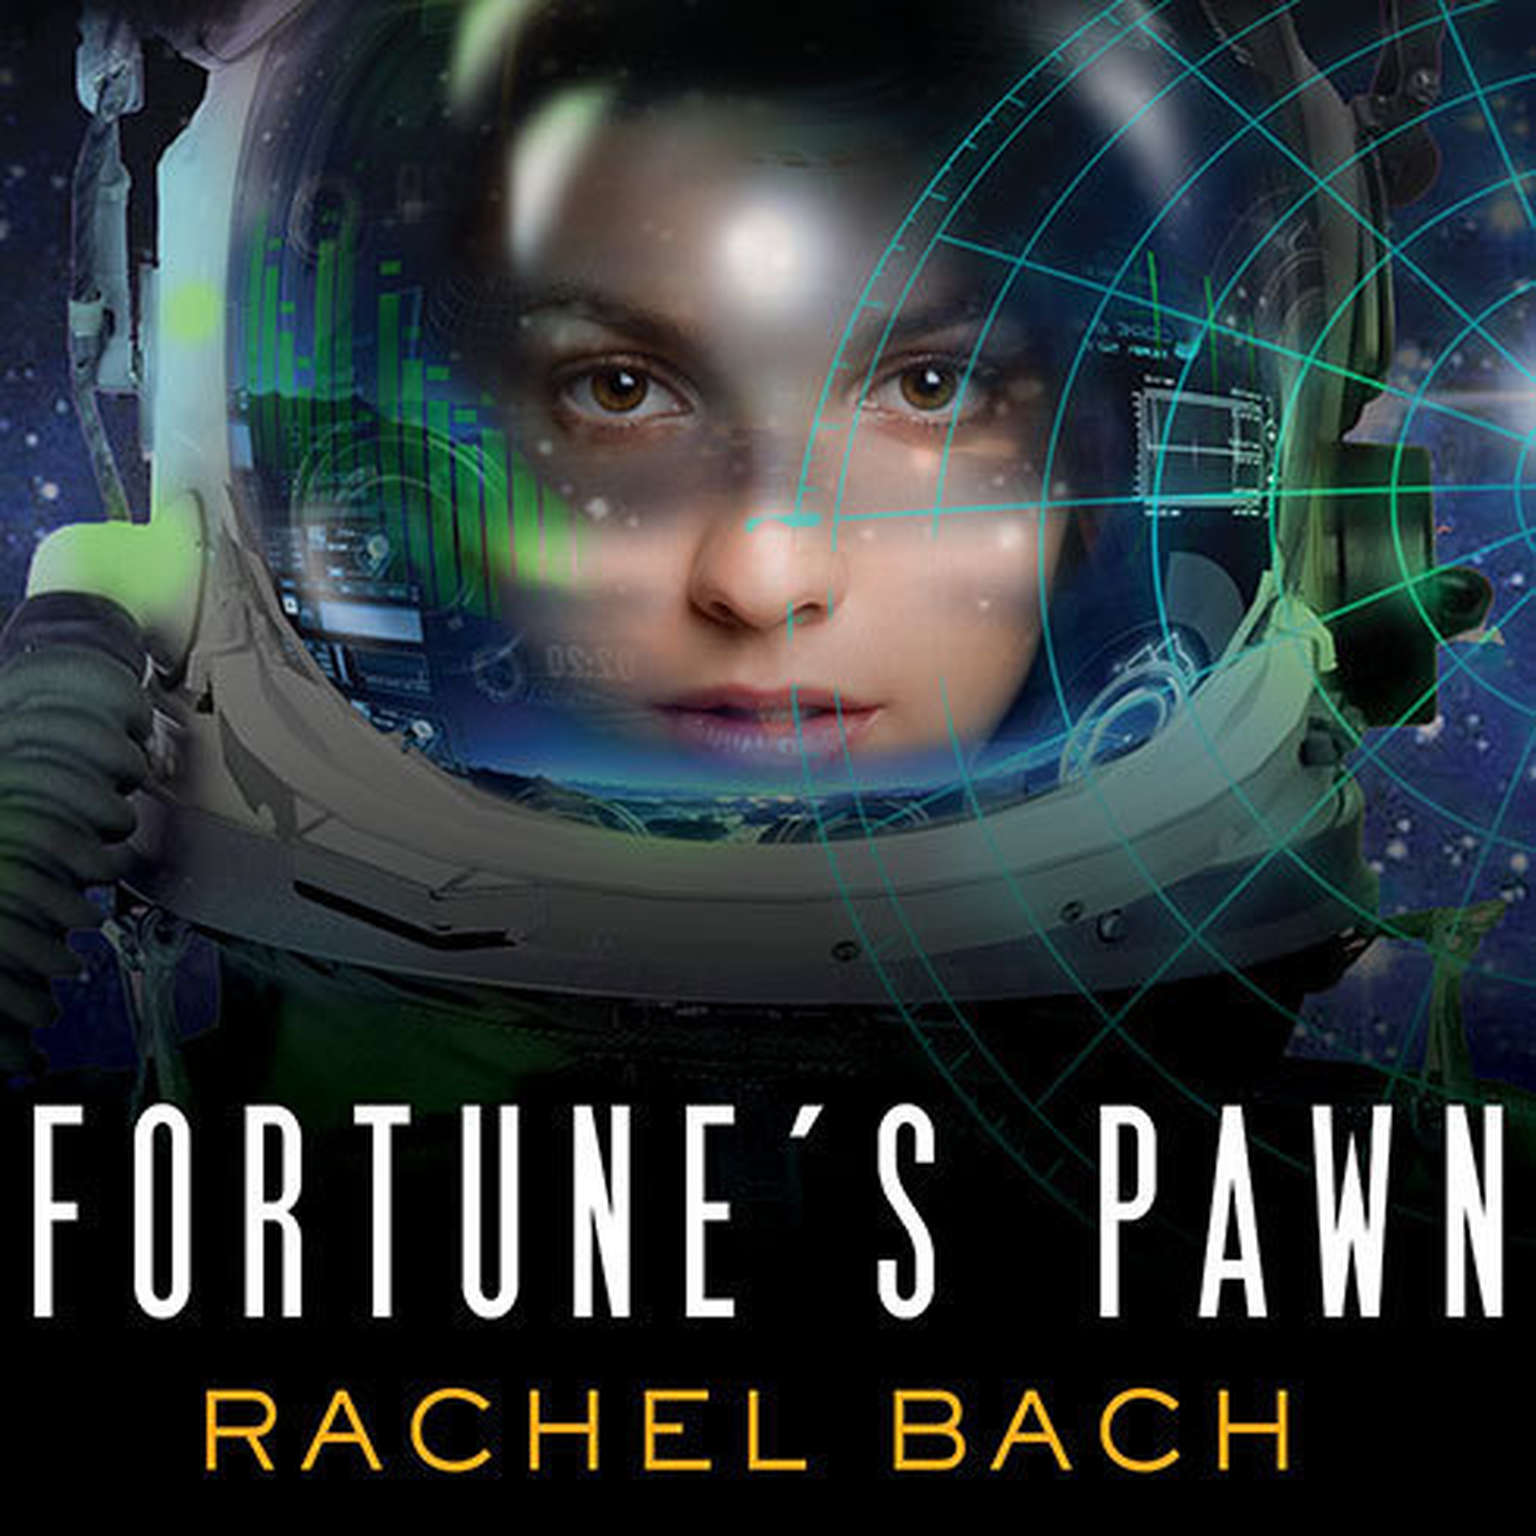 Printable Fortune's Pawn Audiobook Cover Art